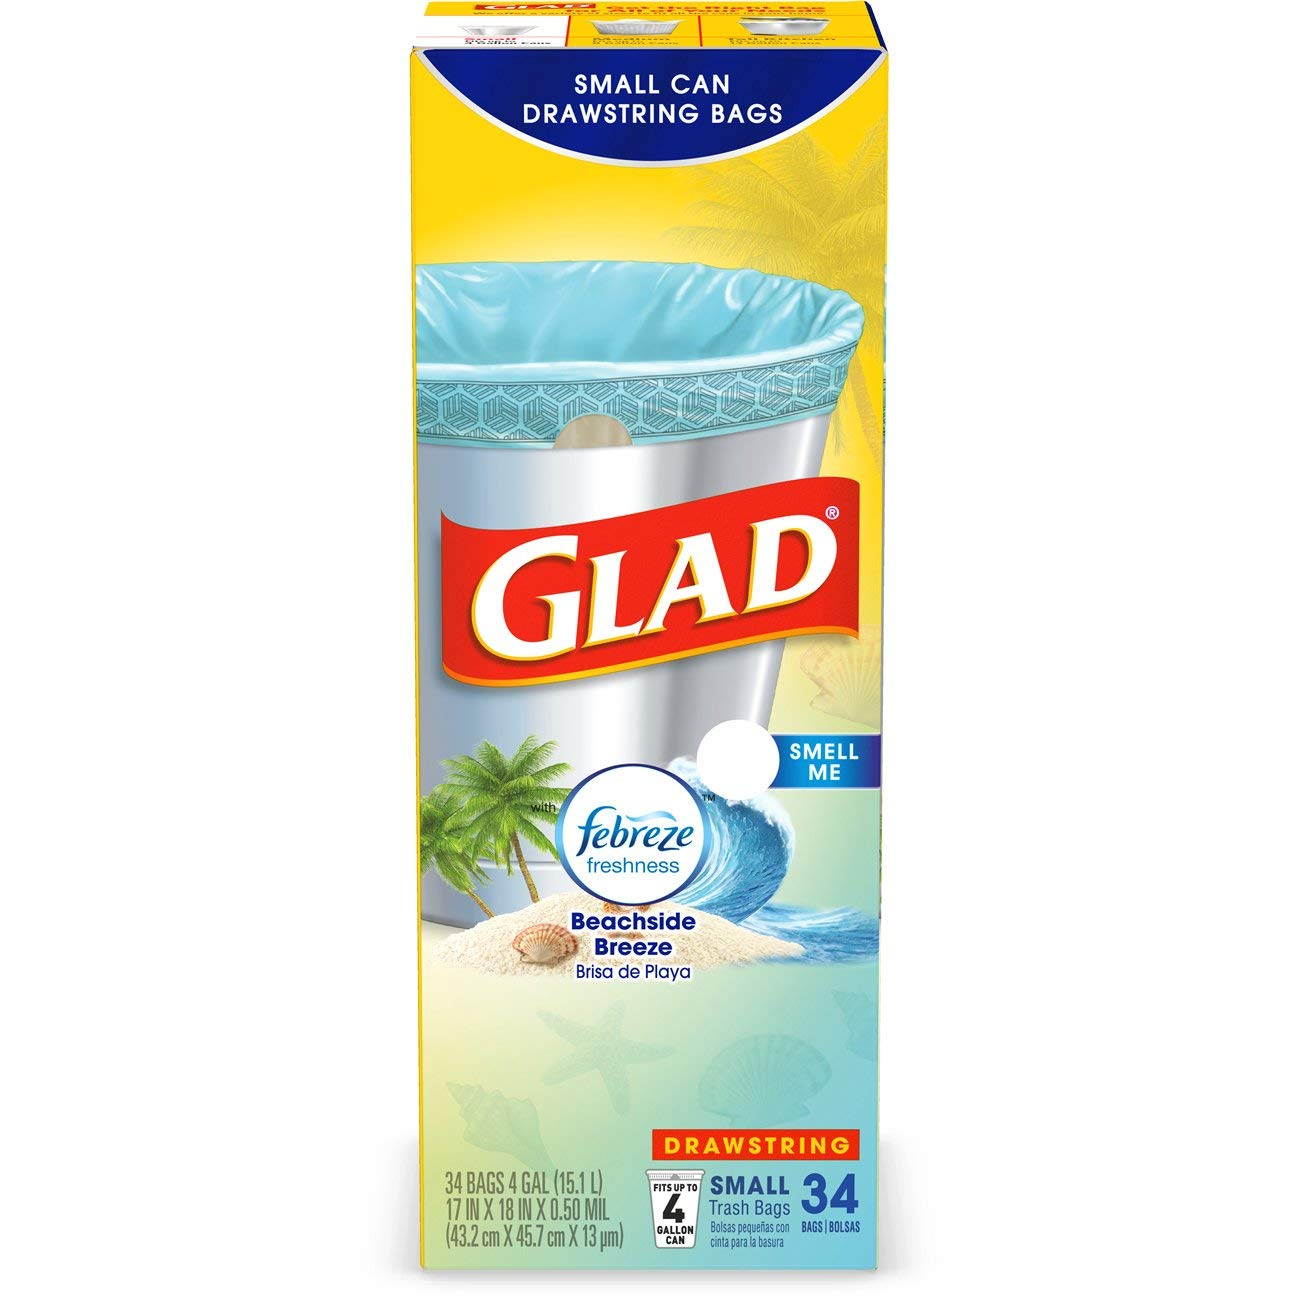 Amazon.com: Glad Small Drawstring Trash Bags - 4 Gallon ...